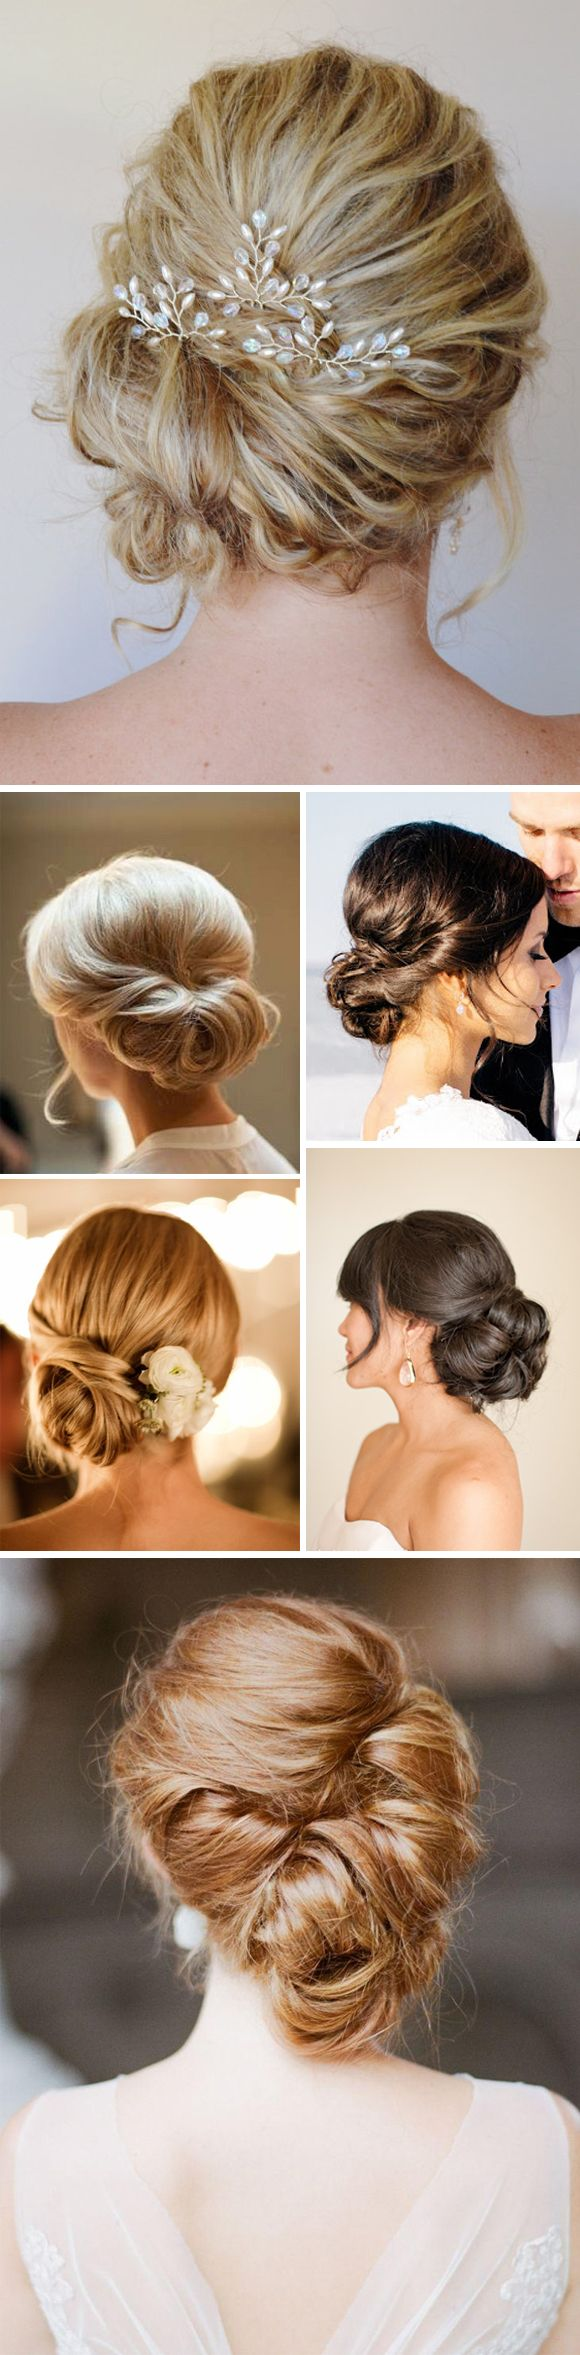 easy pull back with flowers Recogidos bonitos para novias. Wedding hair.